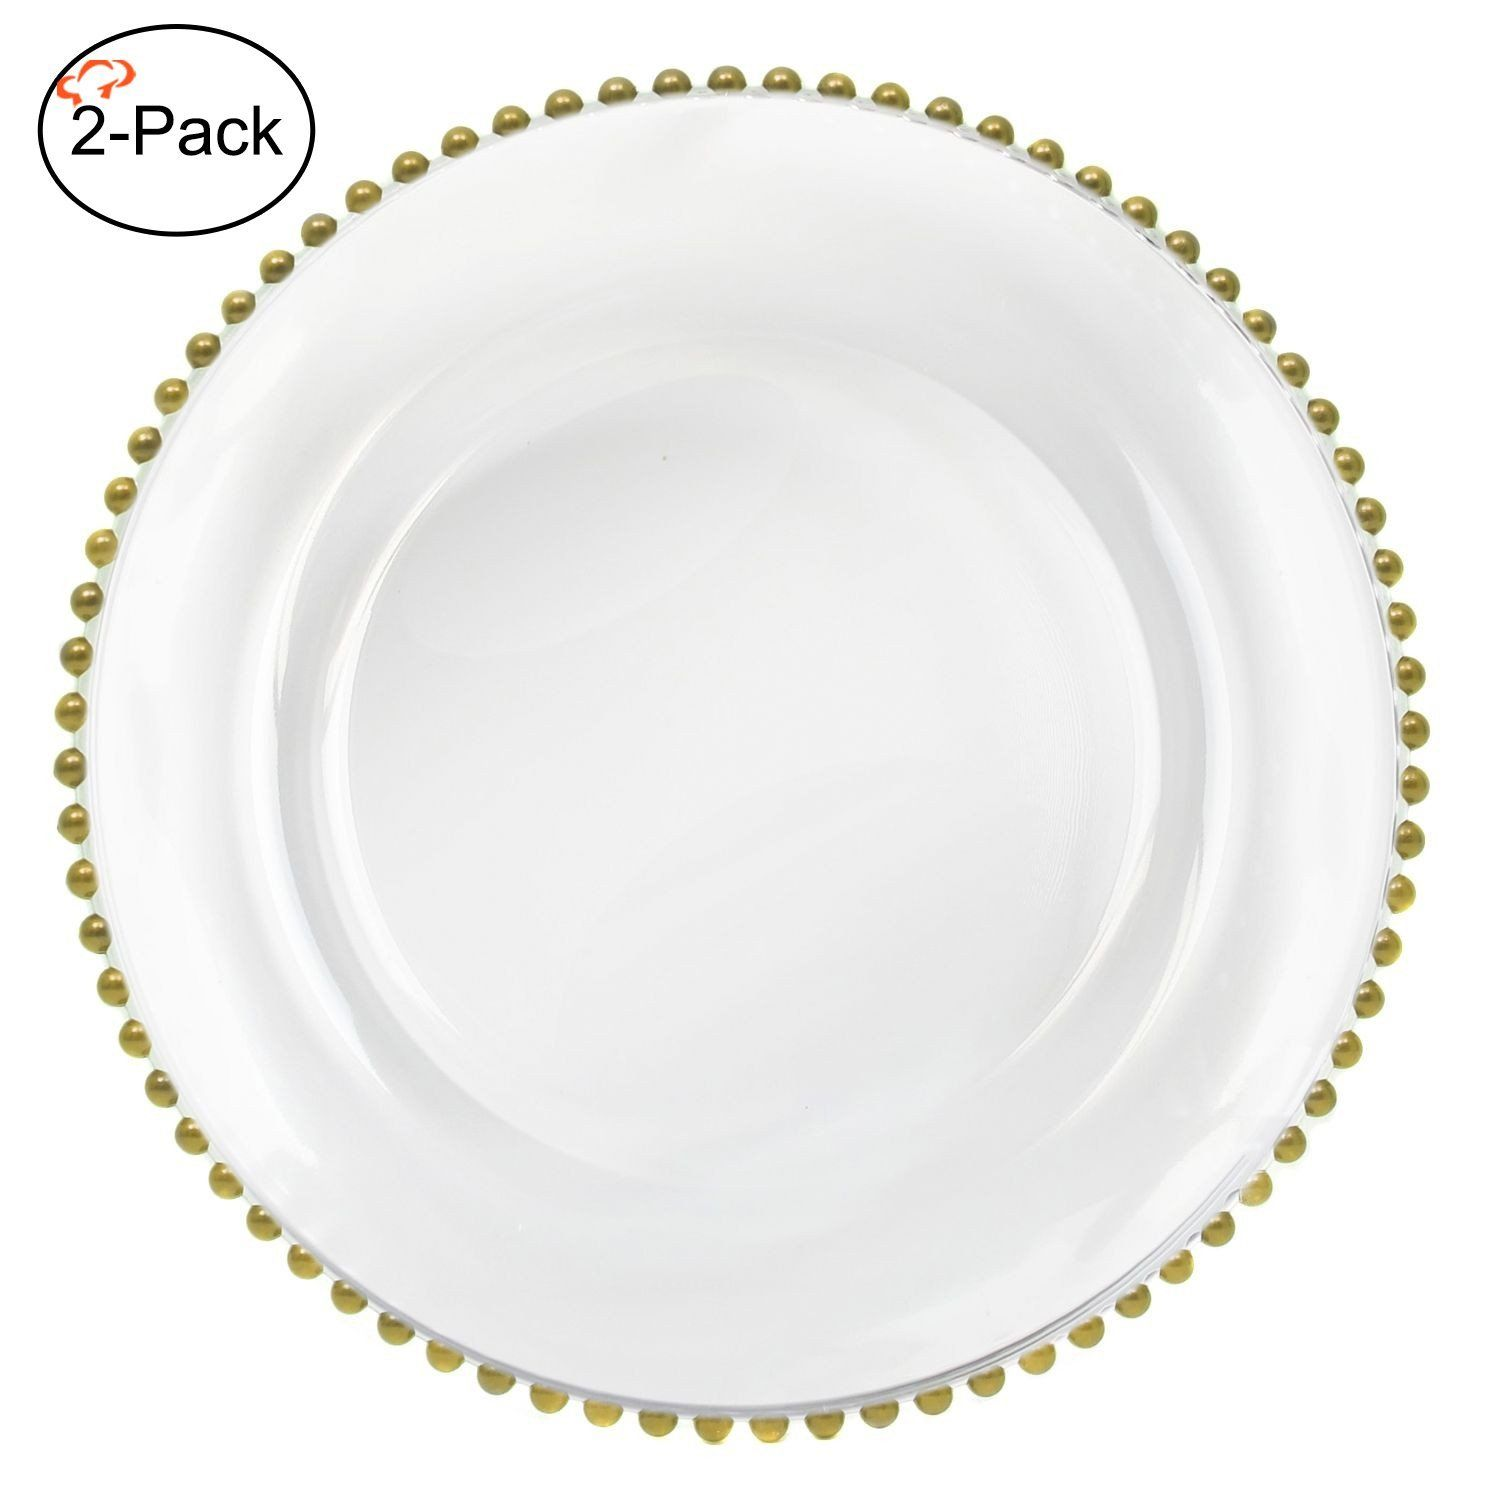 Amazon Com Tiger Chef 13 Inch Gold Round Beaded Glass Charger Plates Set Of 2 4 6 12 Or 24 D Glass Charger Plates Glass Beaded Charger Plate Glass Charger